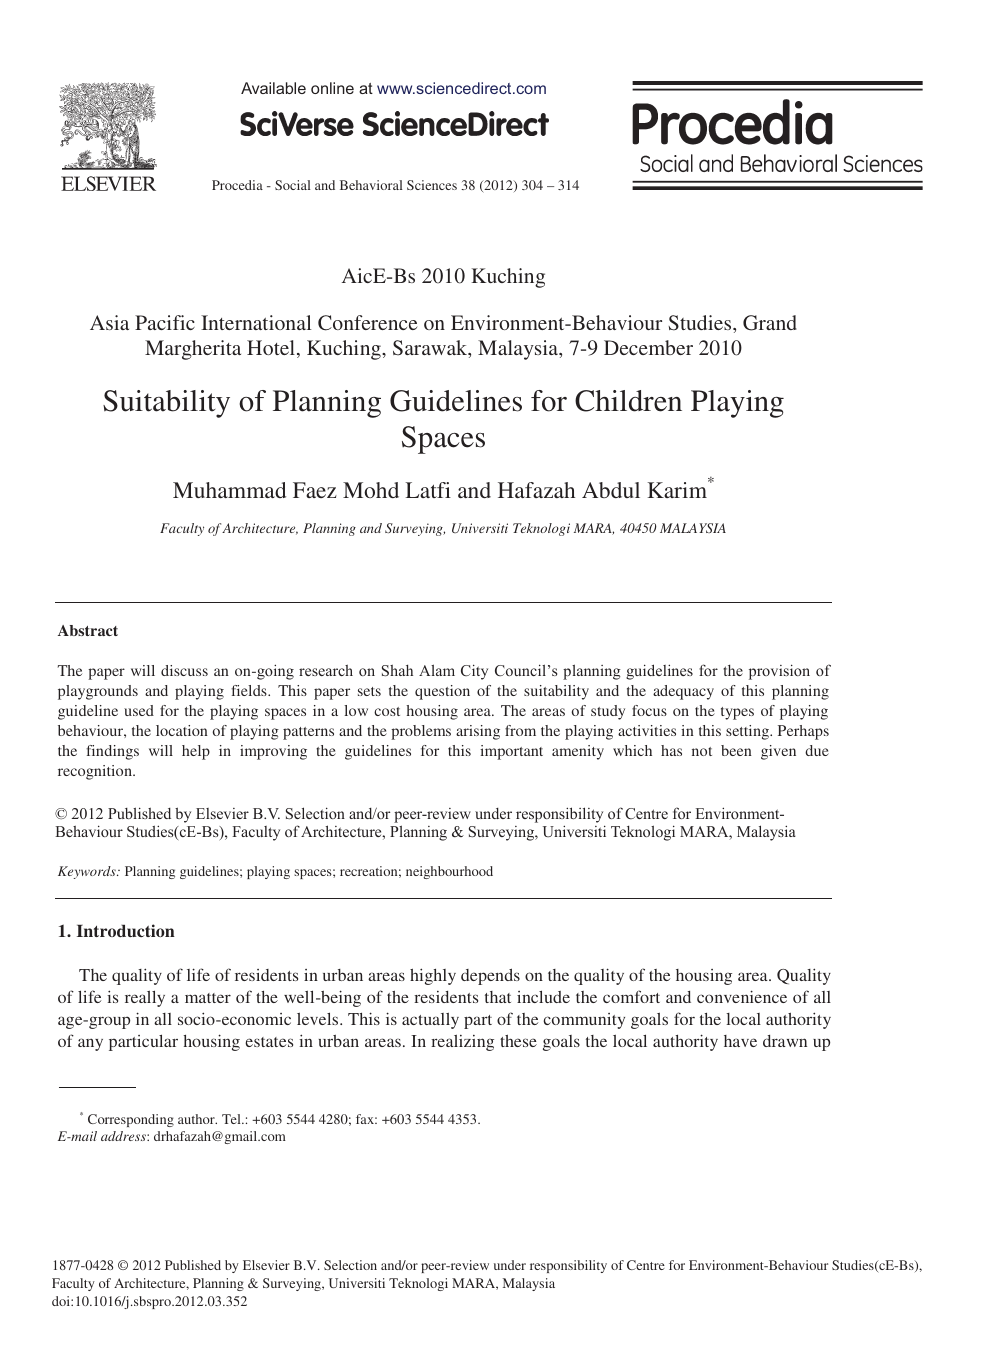 Suitability of Planning Guidelines for Children Playing